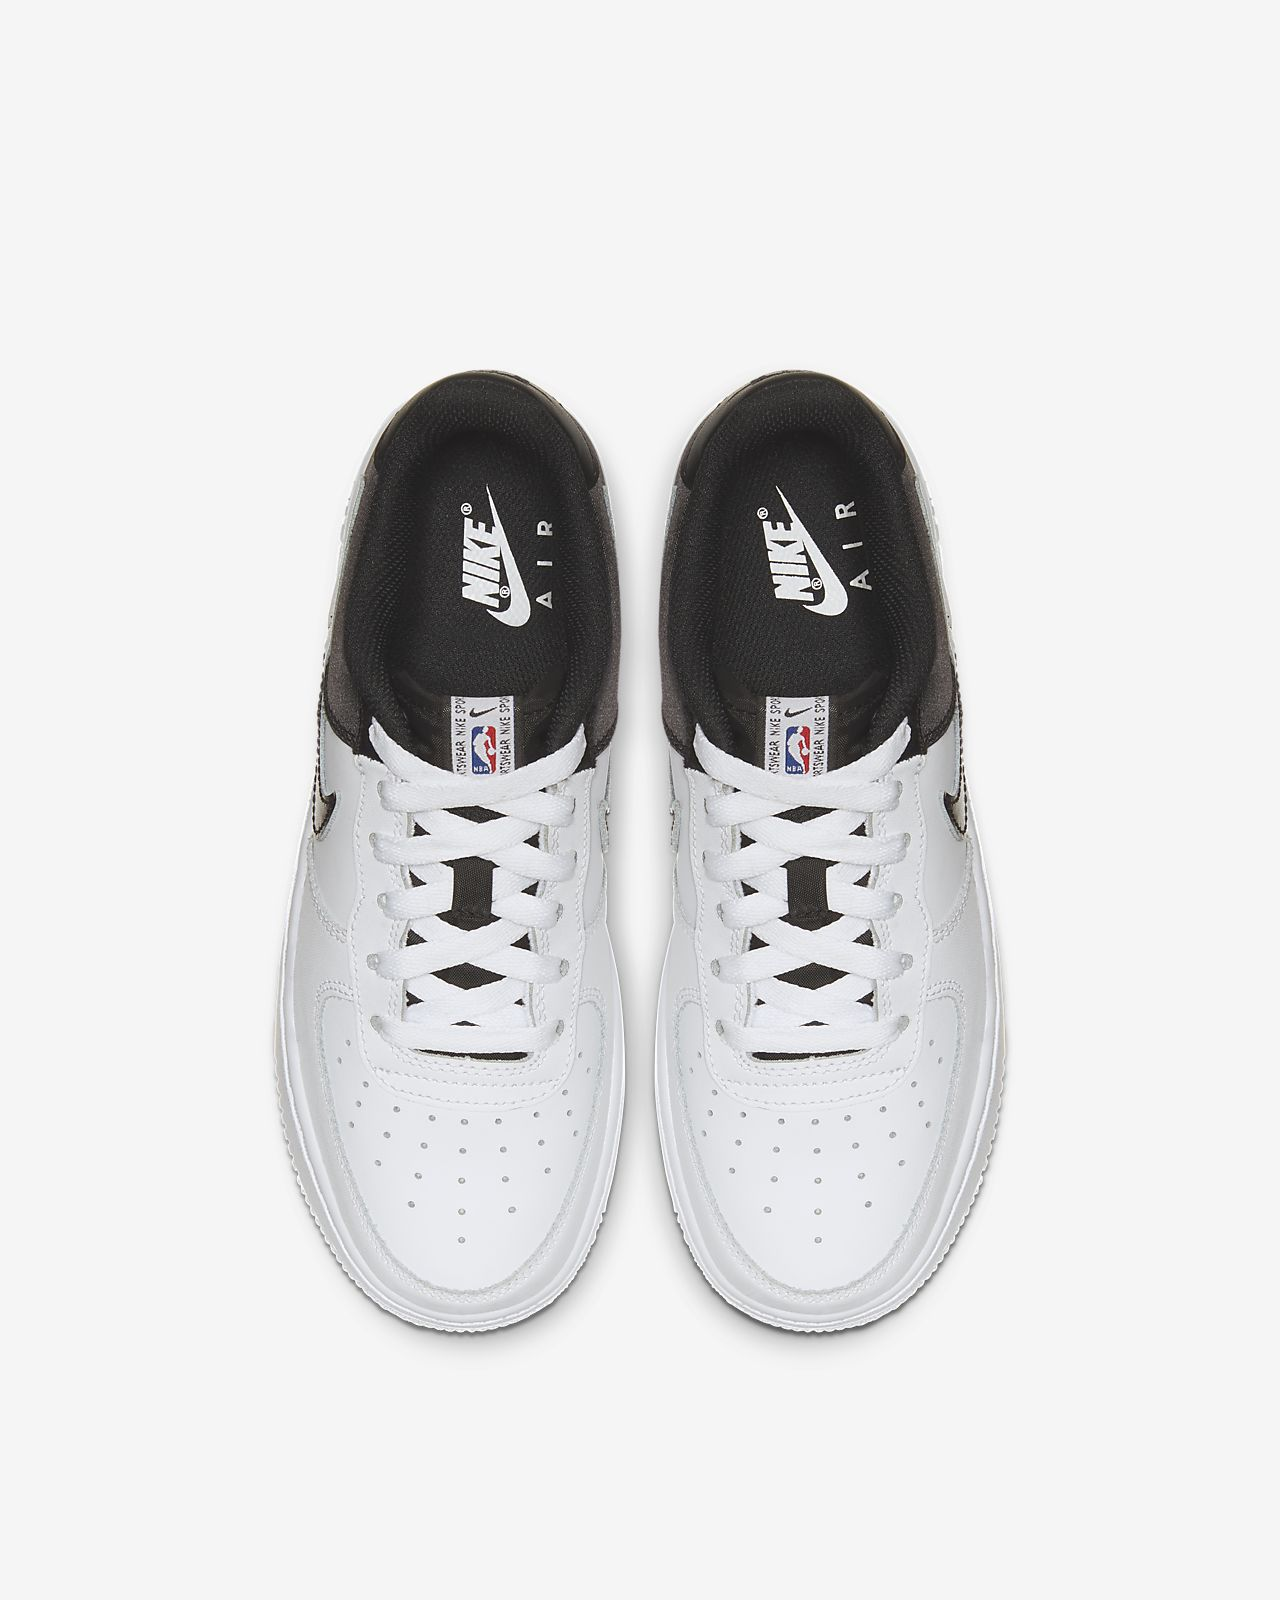 Zapatillas nike air force 1 low blanco clásico original en